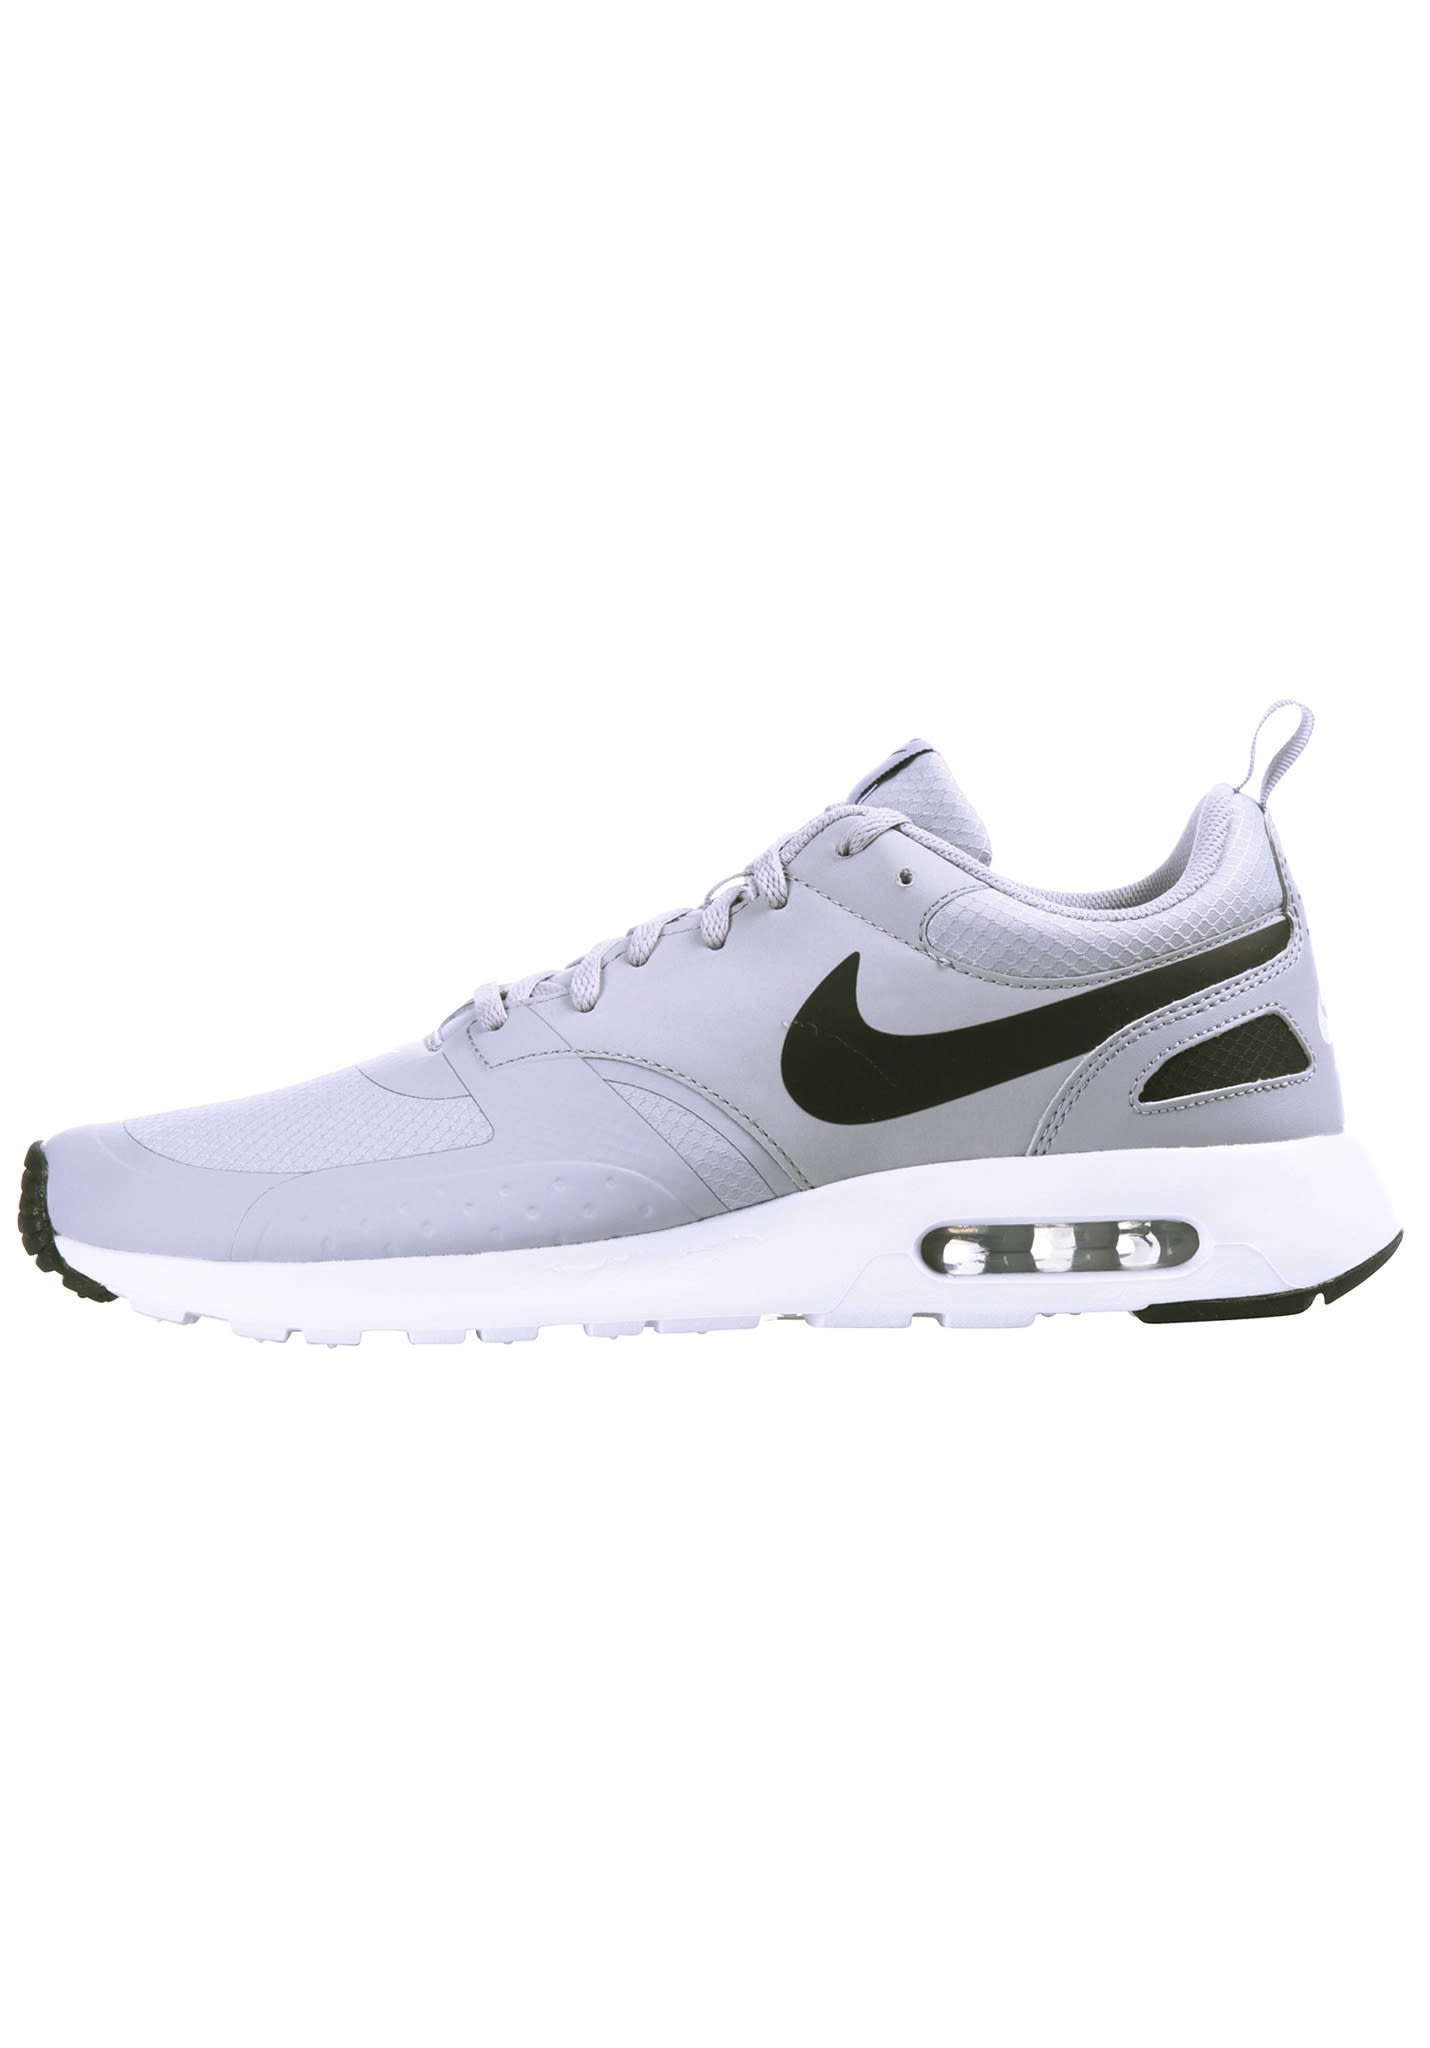 pick up 9c2a8 ae306 NIKE SPORTSWEAR Air Max Vision SE - Sneaker für Herren - Grau - Planet  Sports